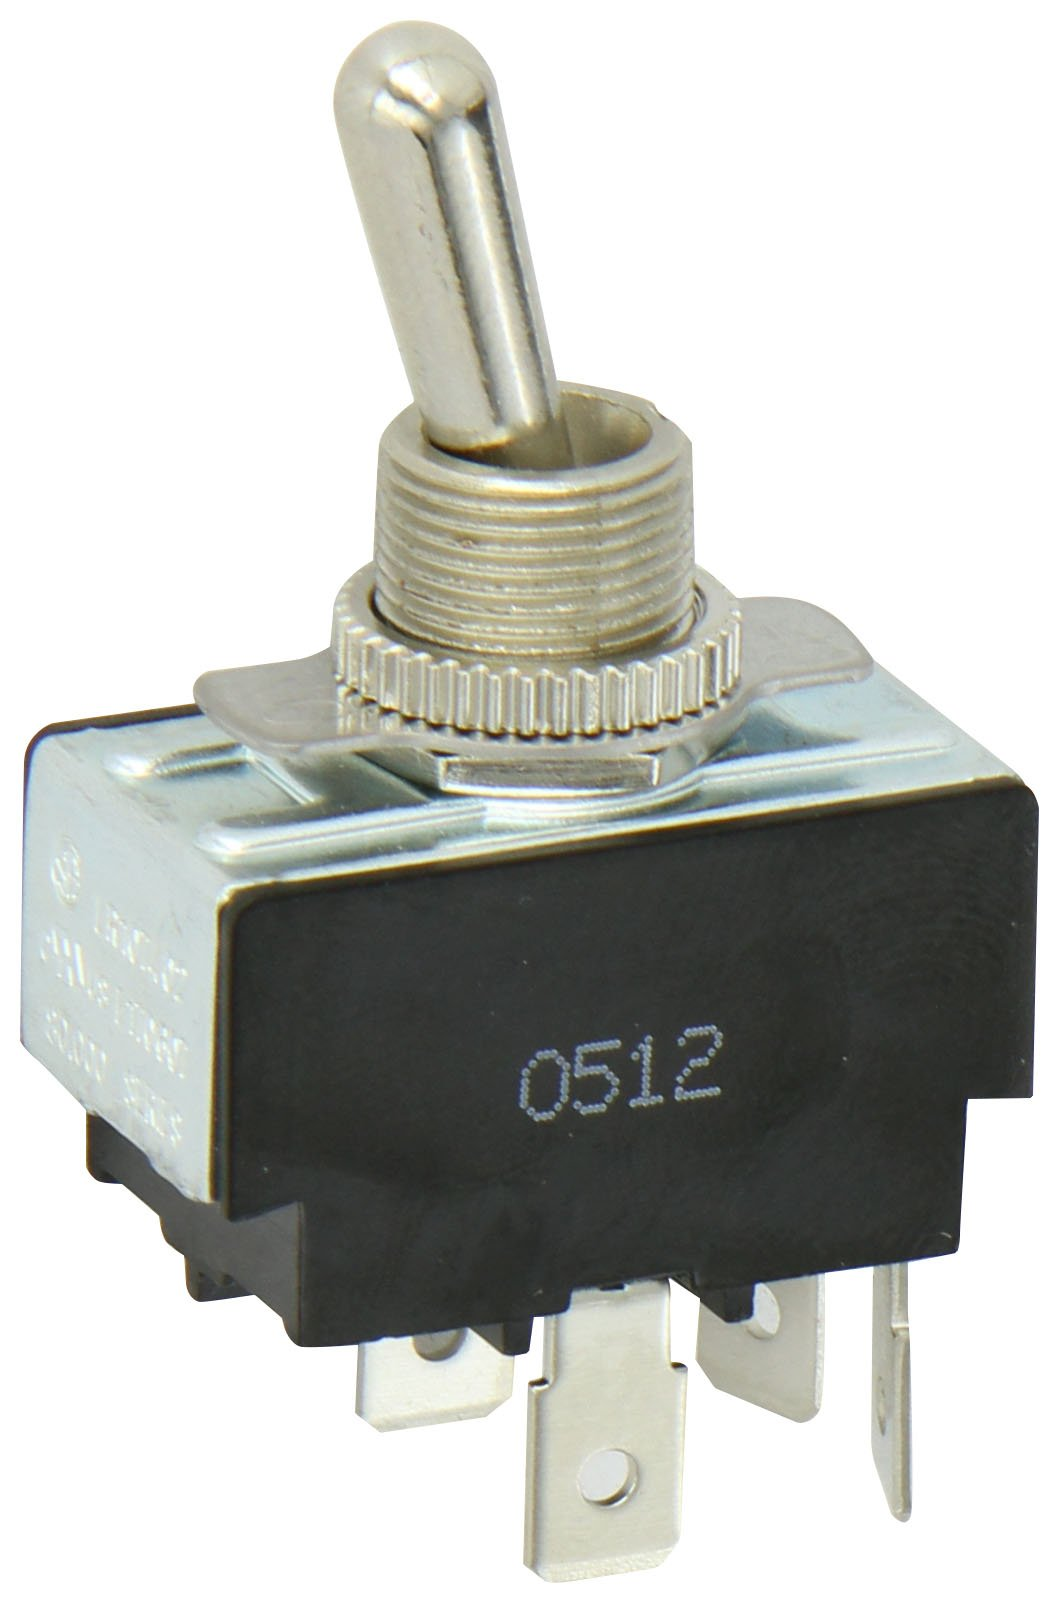 Toggle Switch, Maintained Contact and Multiple Pole, On Off Circut Function, DPST, Brass/Nickel Actuator, 15/10 amps at 125/250 VAC, 0.250 Quikconnect Connection